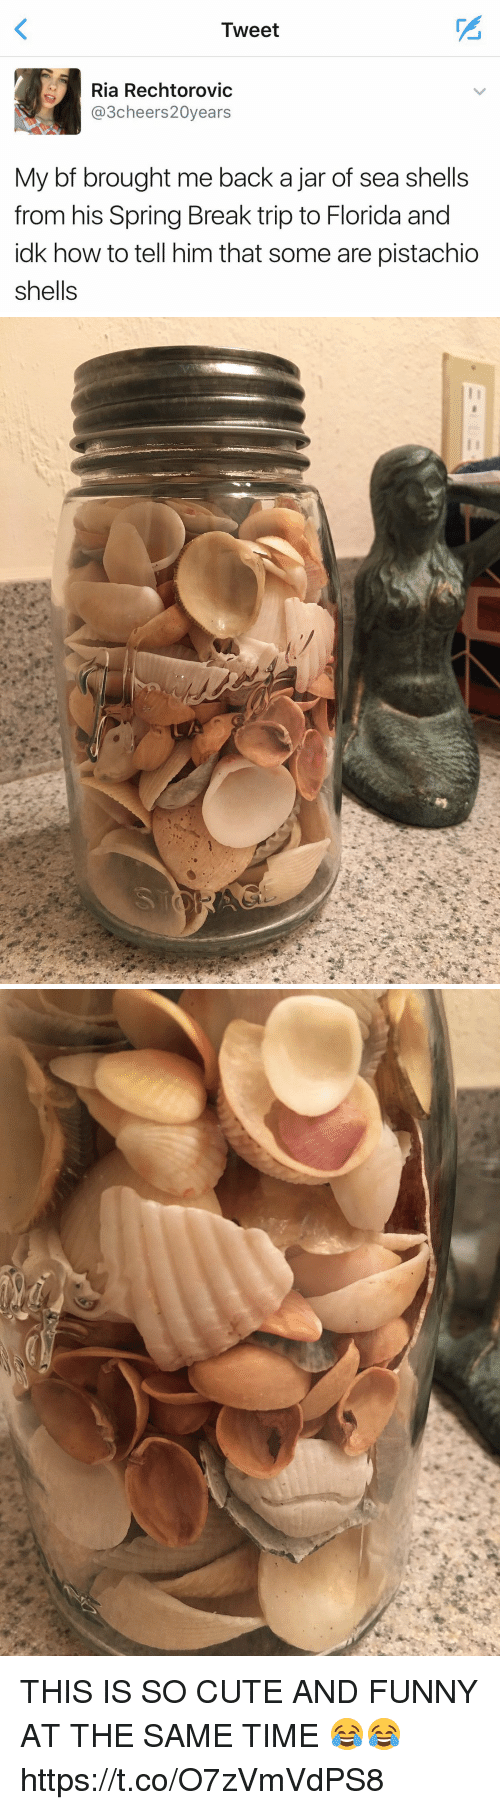 Cute, Funny, and Spring Break: Tweet  Ria Rechtorovic  3cheers20years  My bf brought me back a jar of sea shells  from his Spring Break trip to Florida and  idk how to tell him that some are pistachio  shells   ソ THIS IS SO CUTE AND FUNNY AT THE SAME TIME 😂😂 https://t.co/O7zVmVdPS8